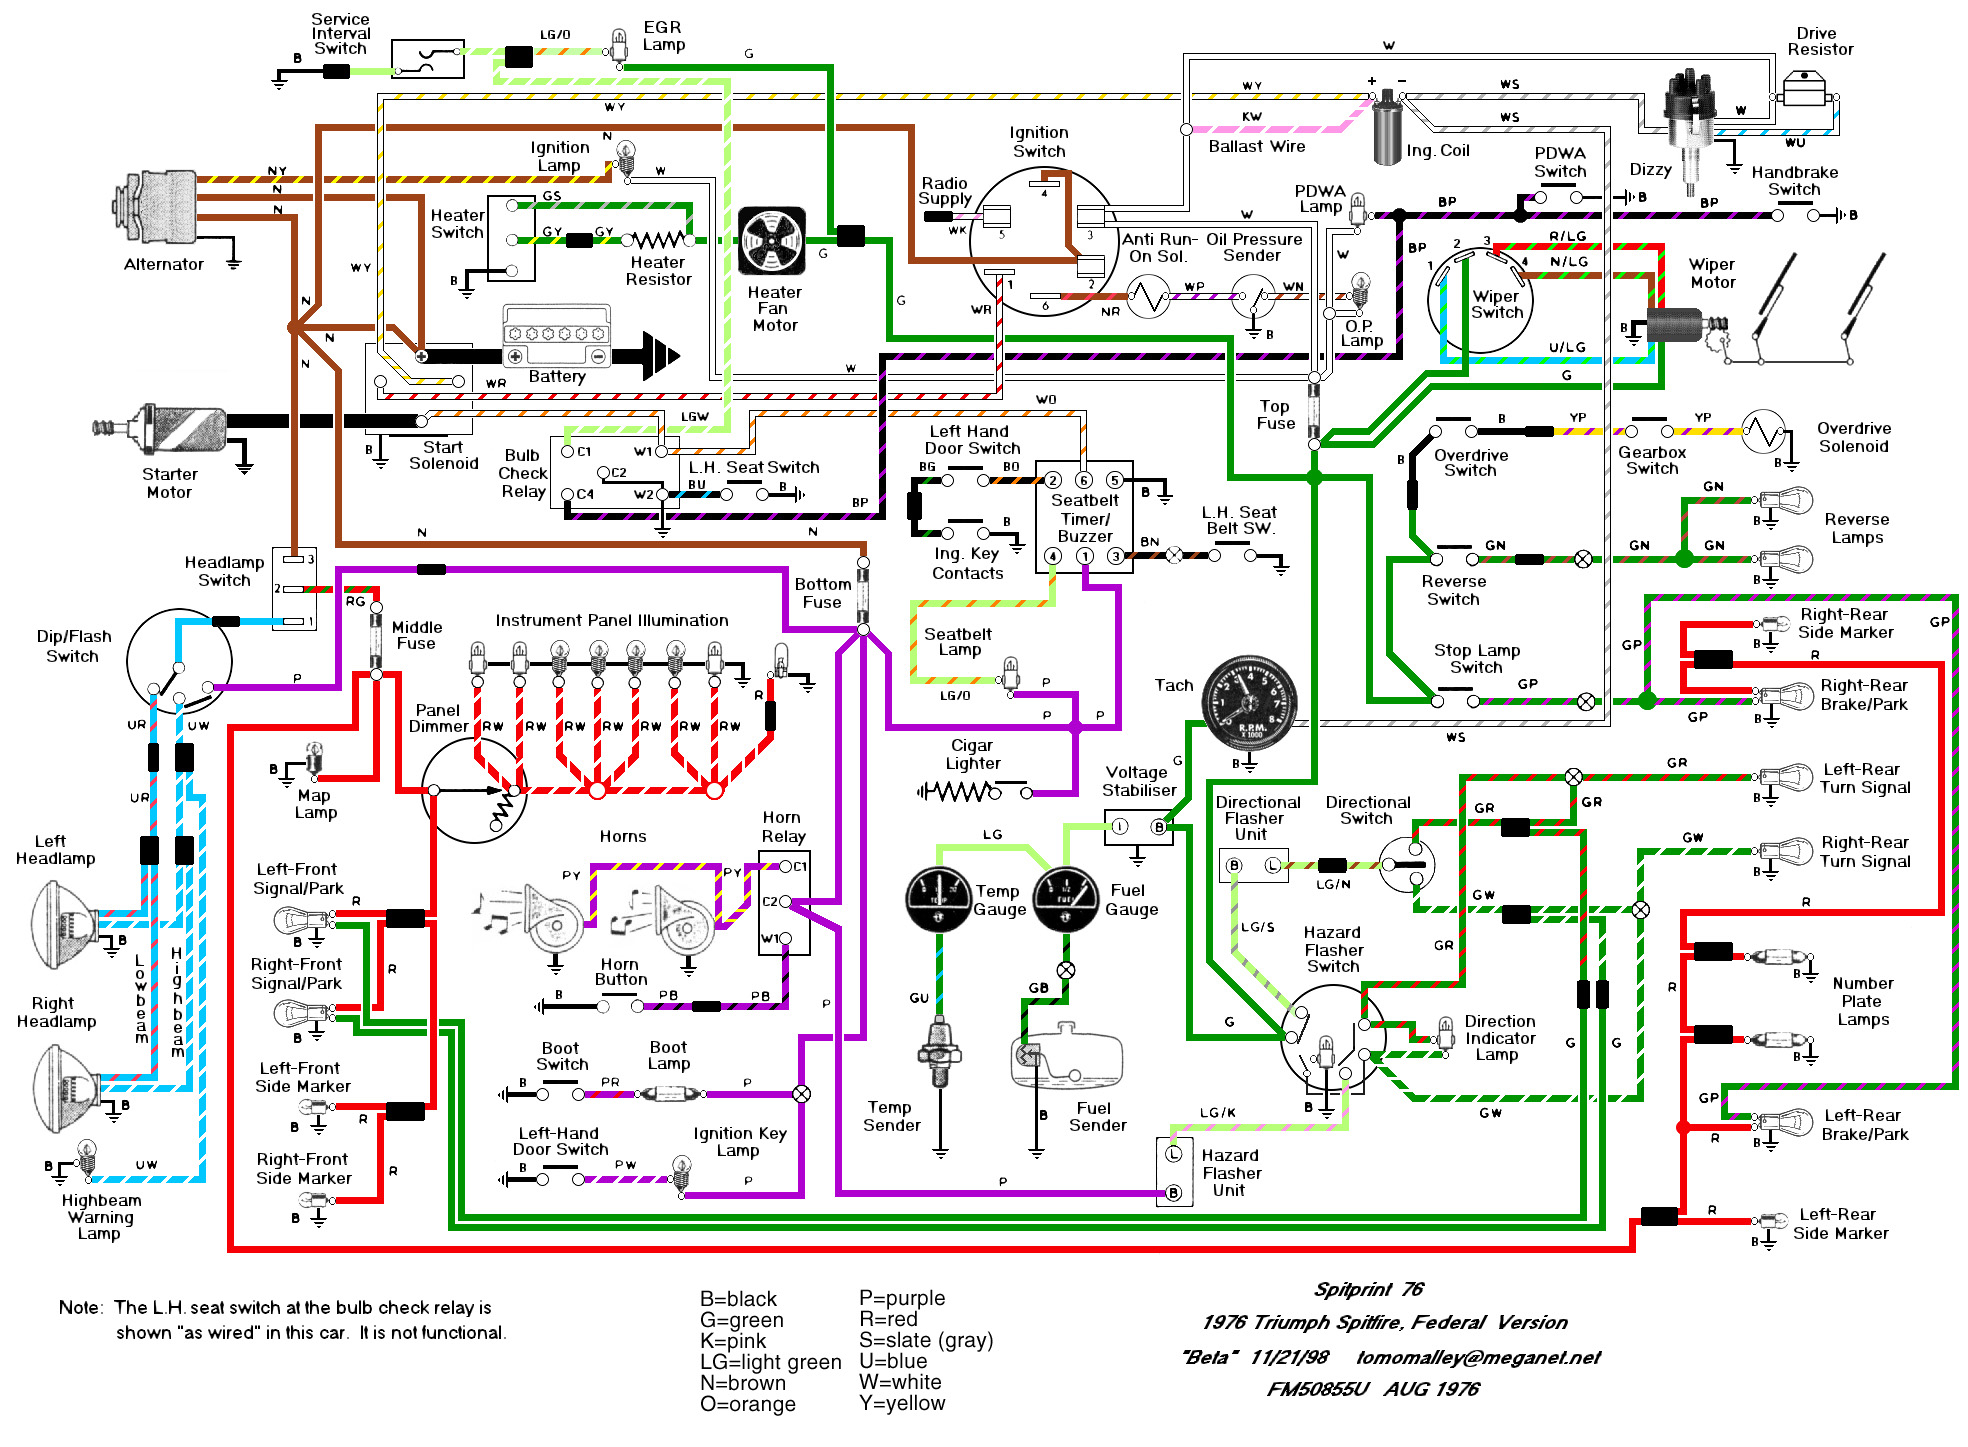 76diagram show wiring diagrams electrical wiring diagram software \u2022 wiring autocar wiring schematic at fashall.co